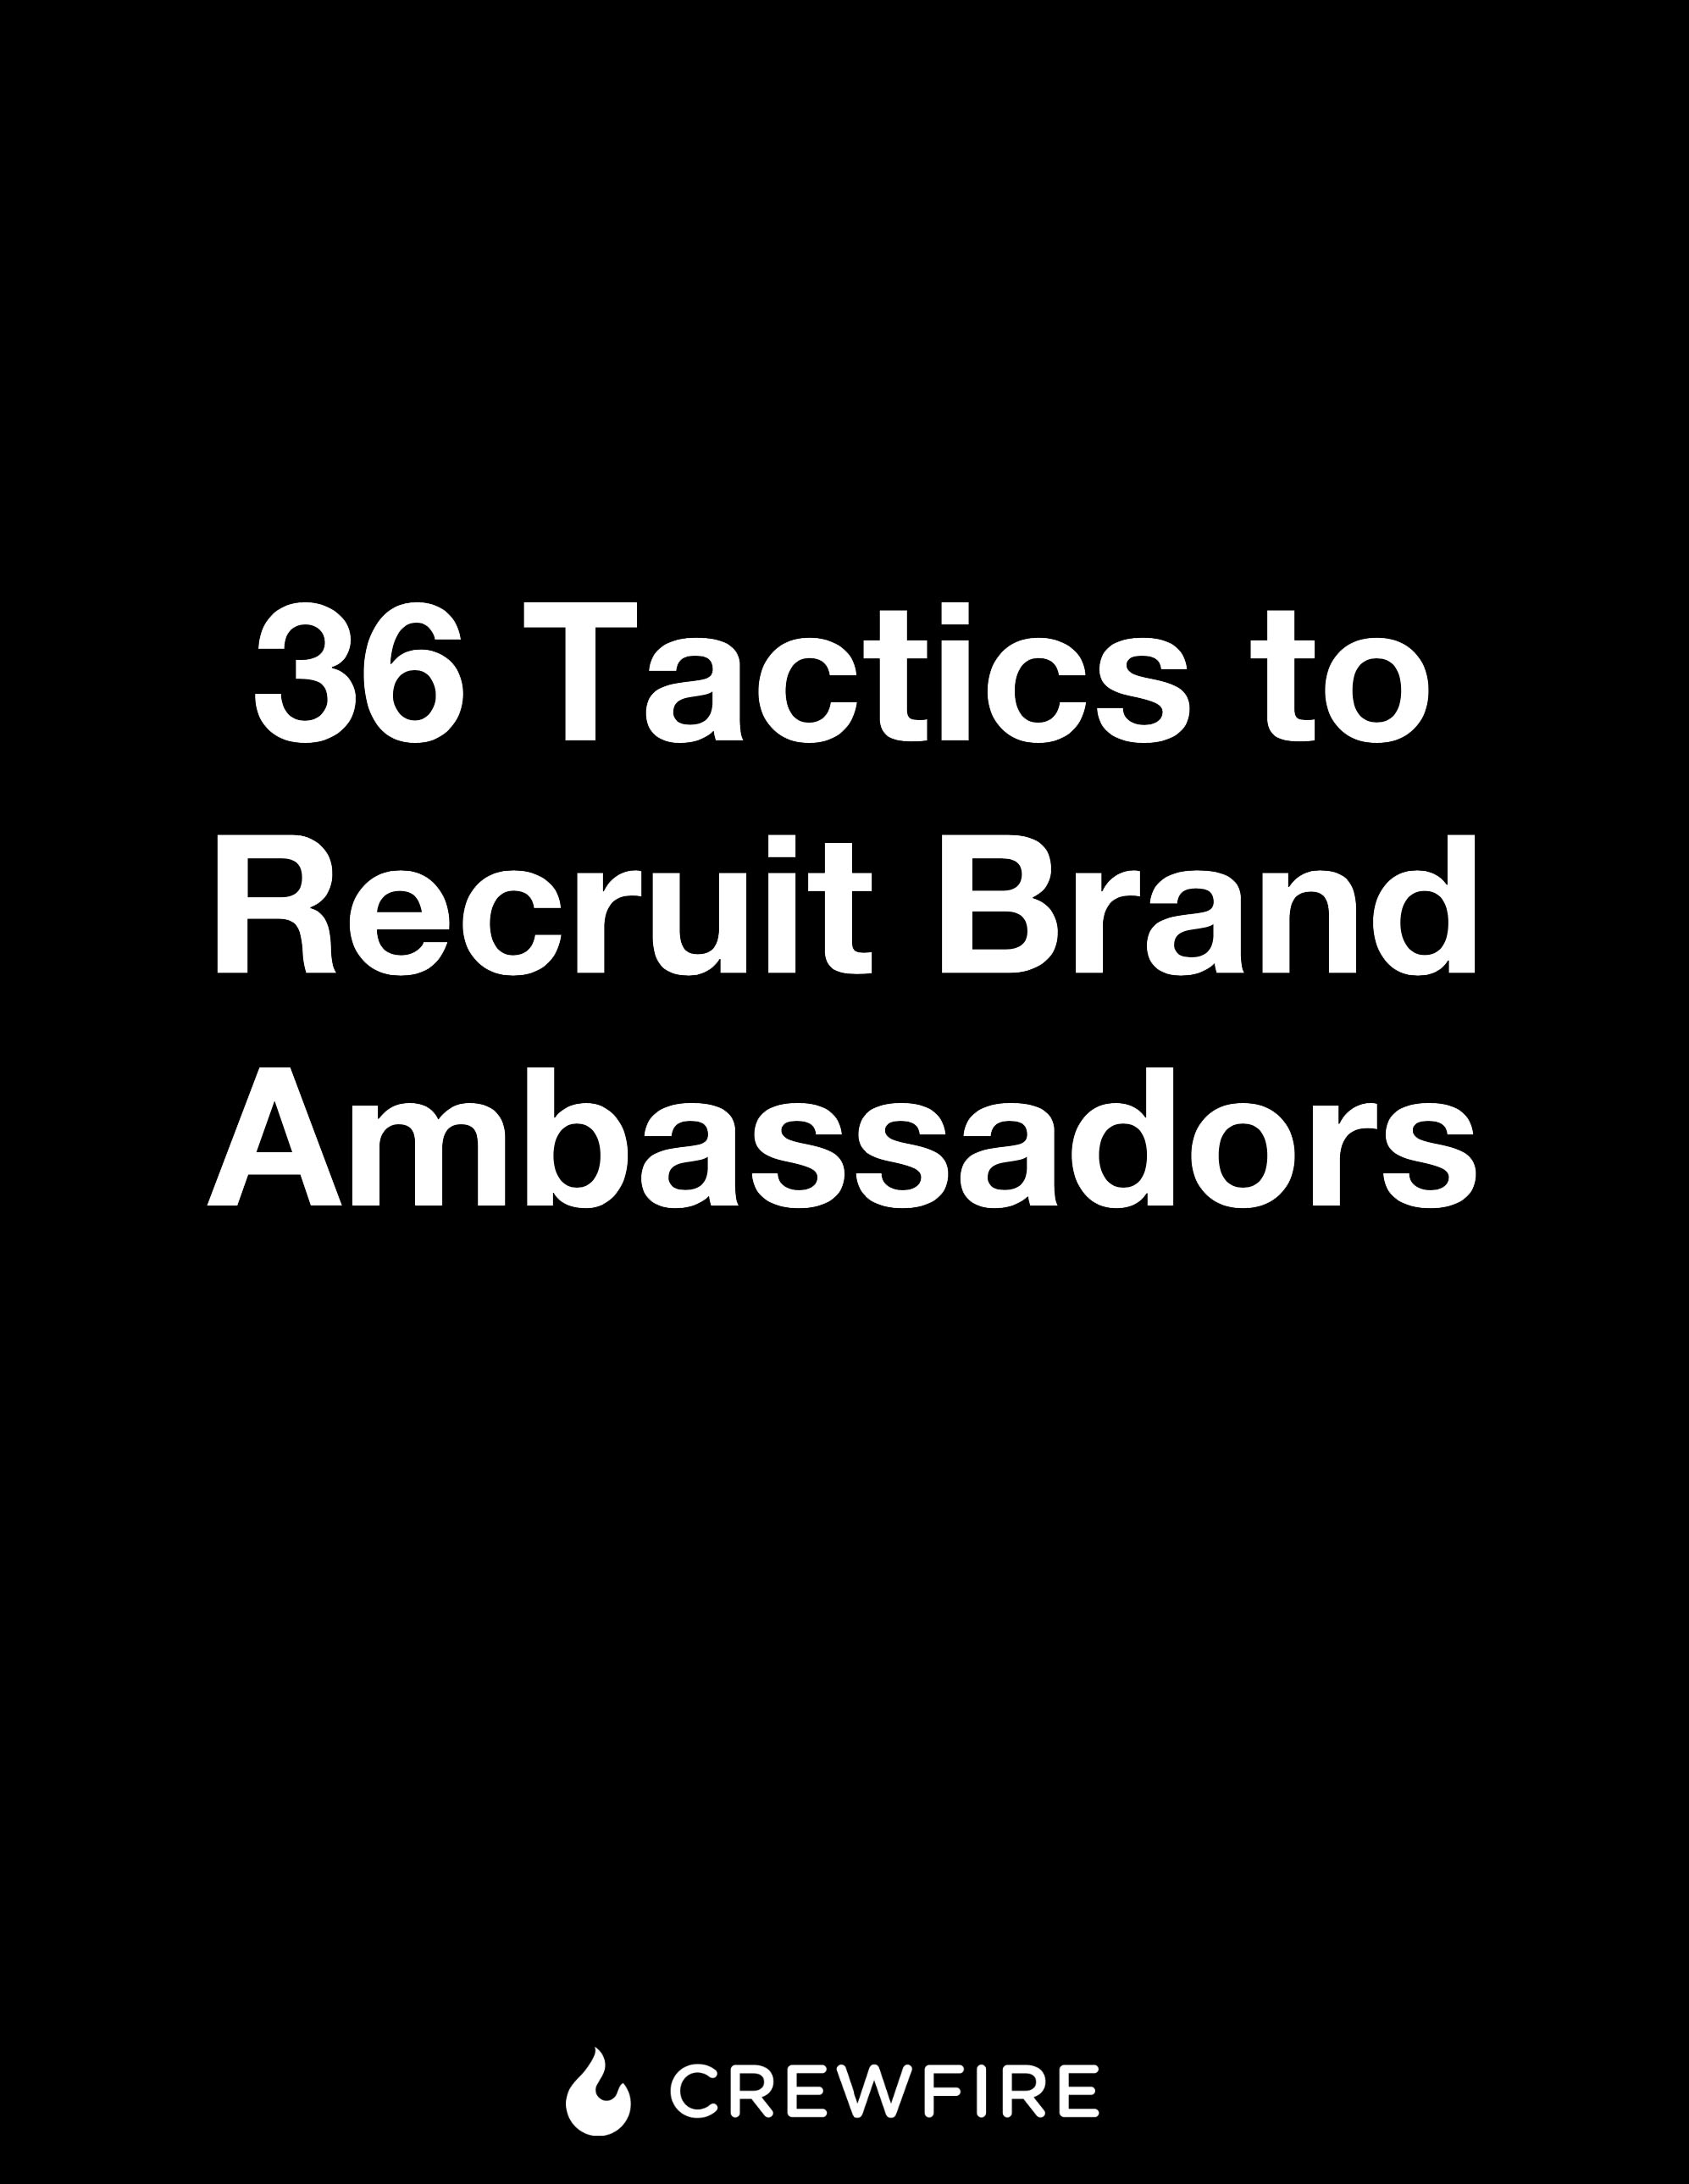 36 Tactics to Recruit Brand Ambassadors - CrewFire Guide